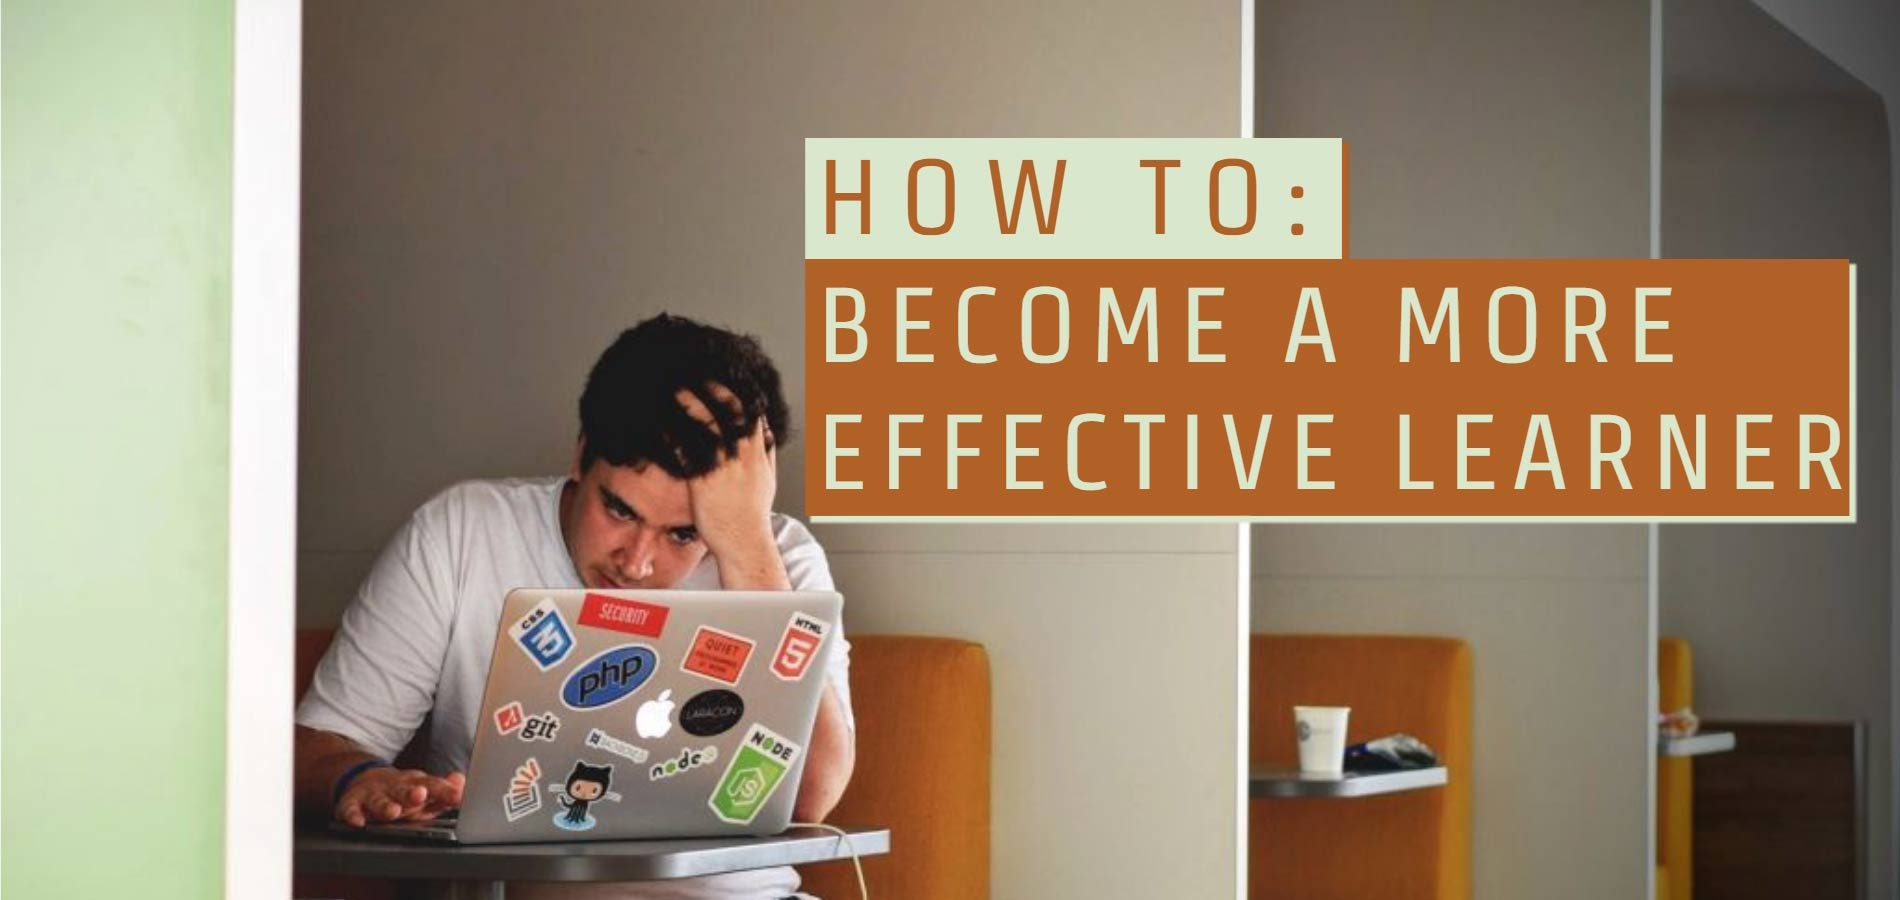 How to: become a more effective learner